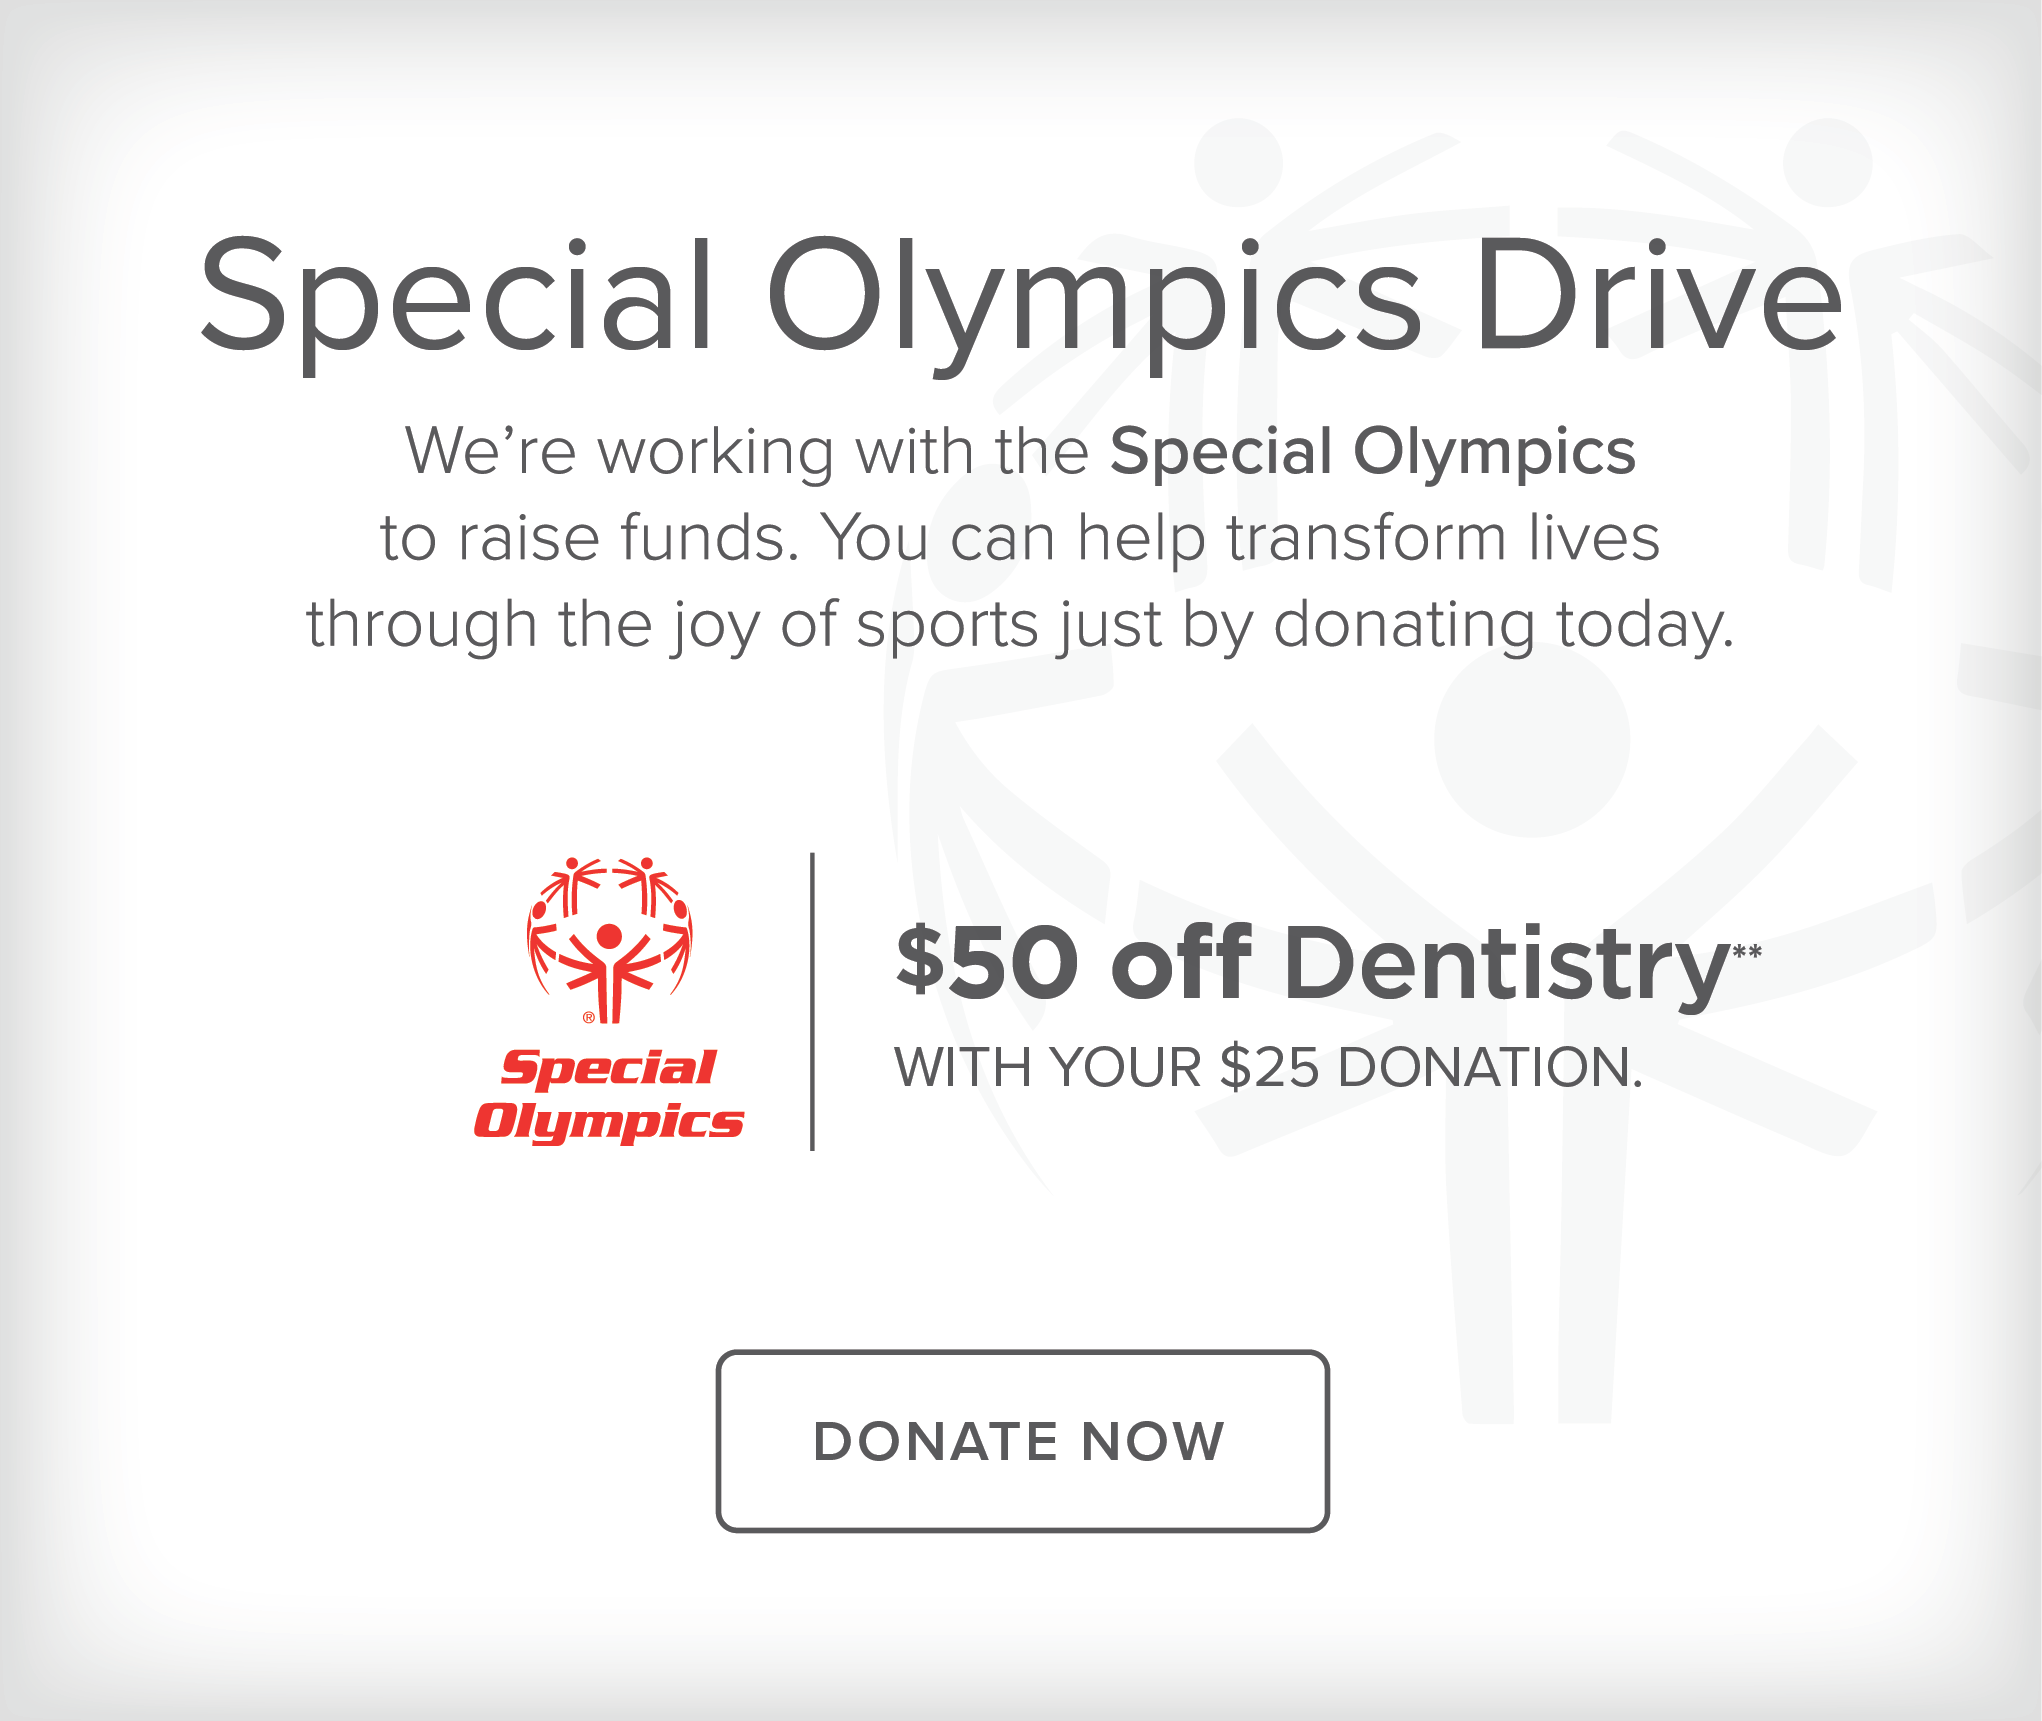 Special Olympics Drive - Lone Tree Dentists and Orthodontics